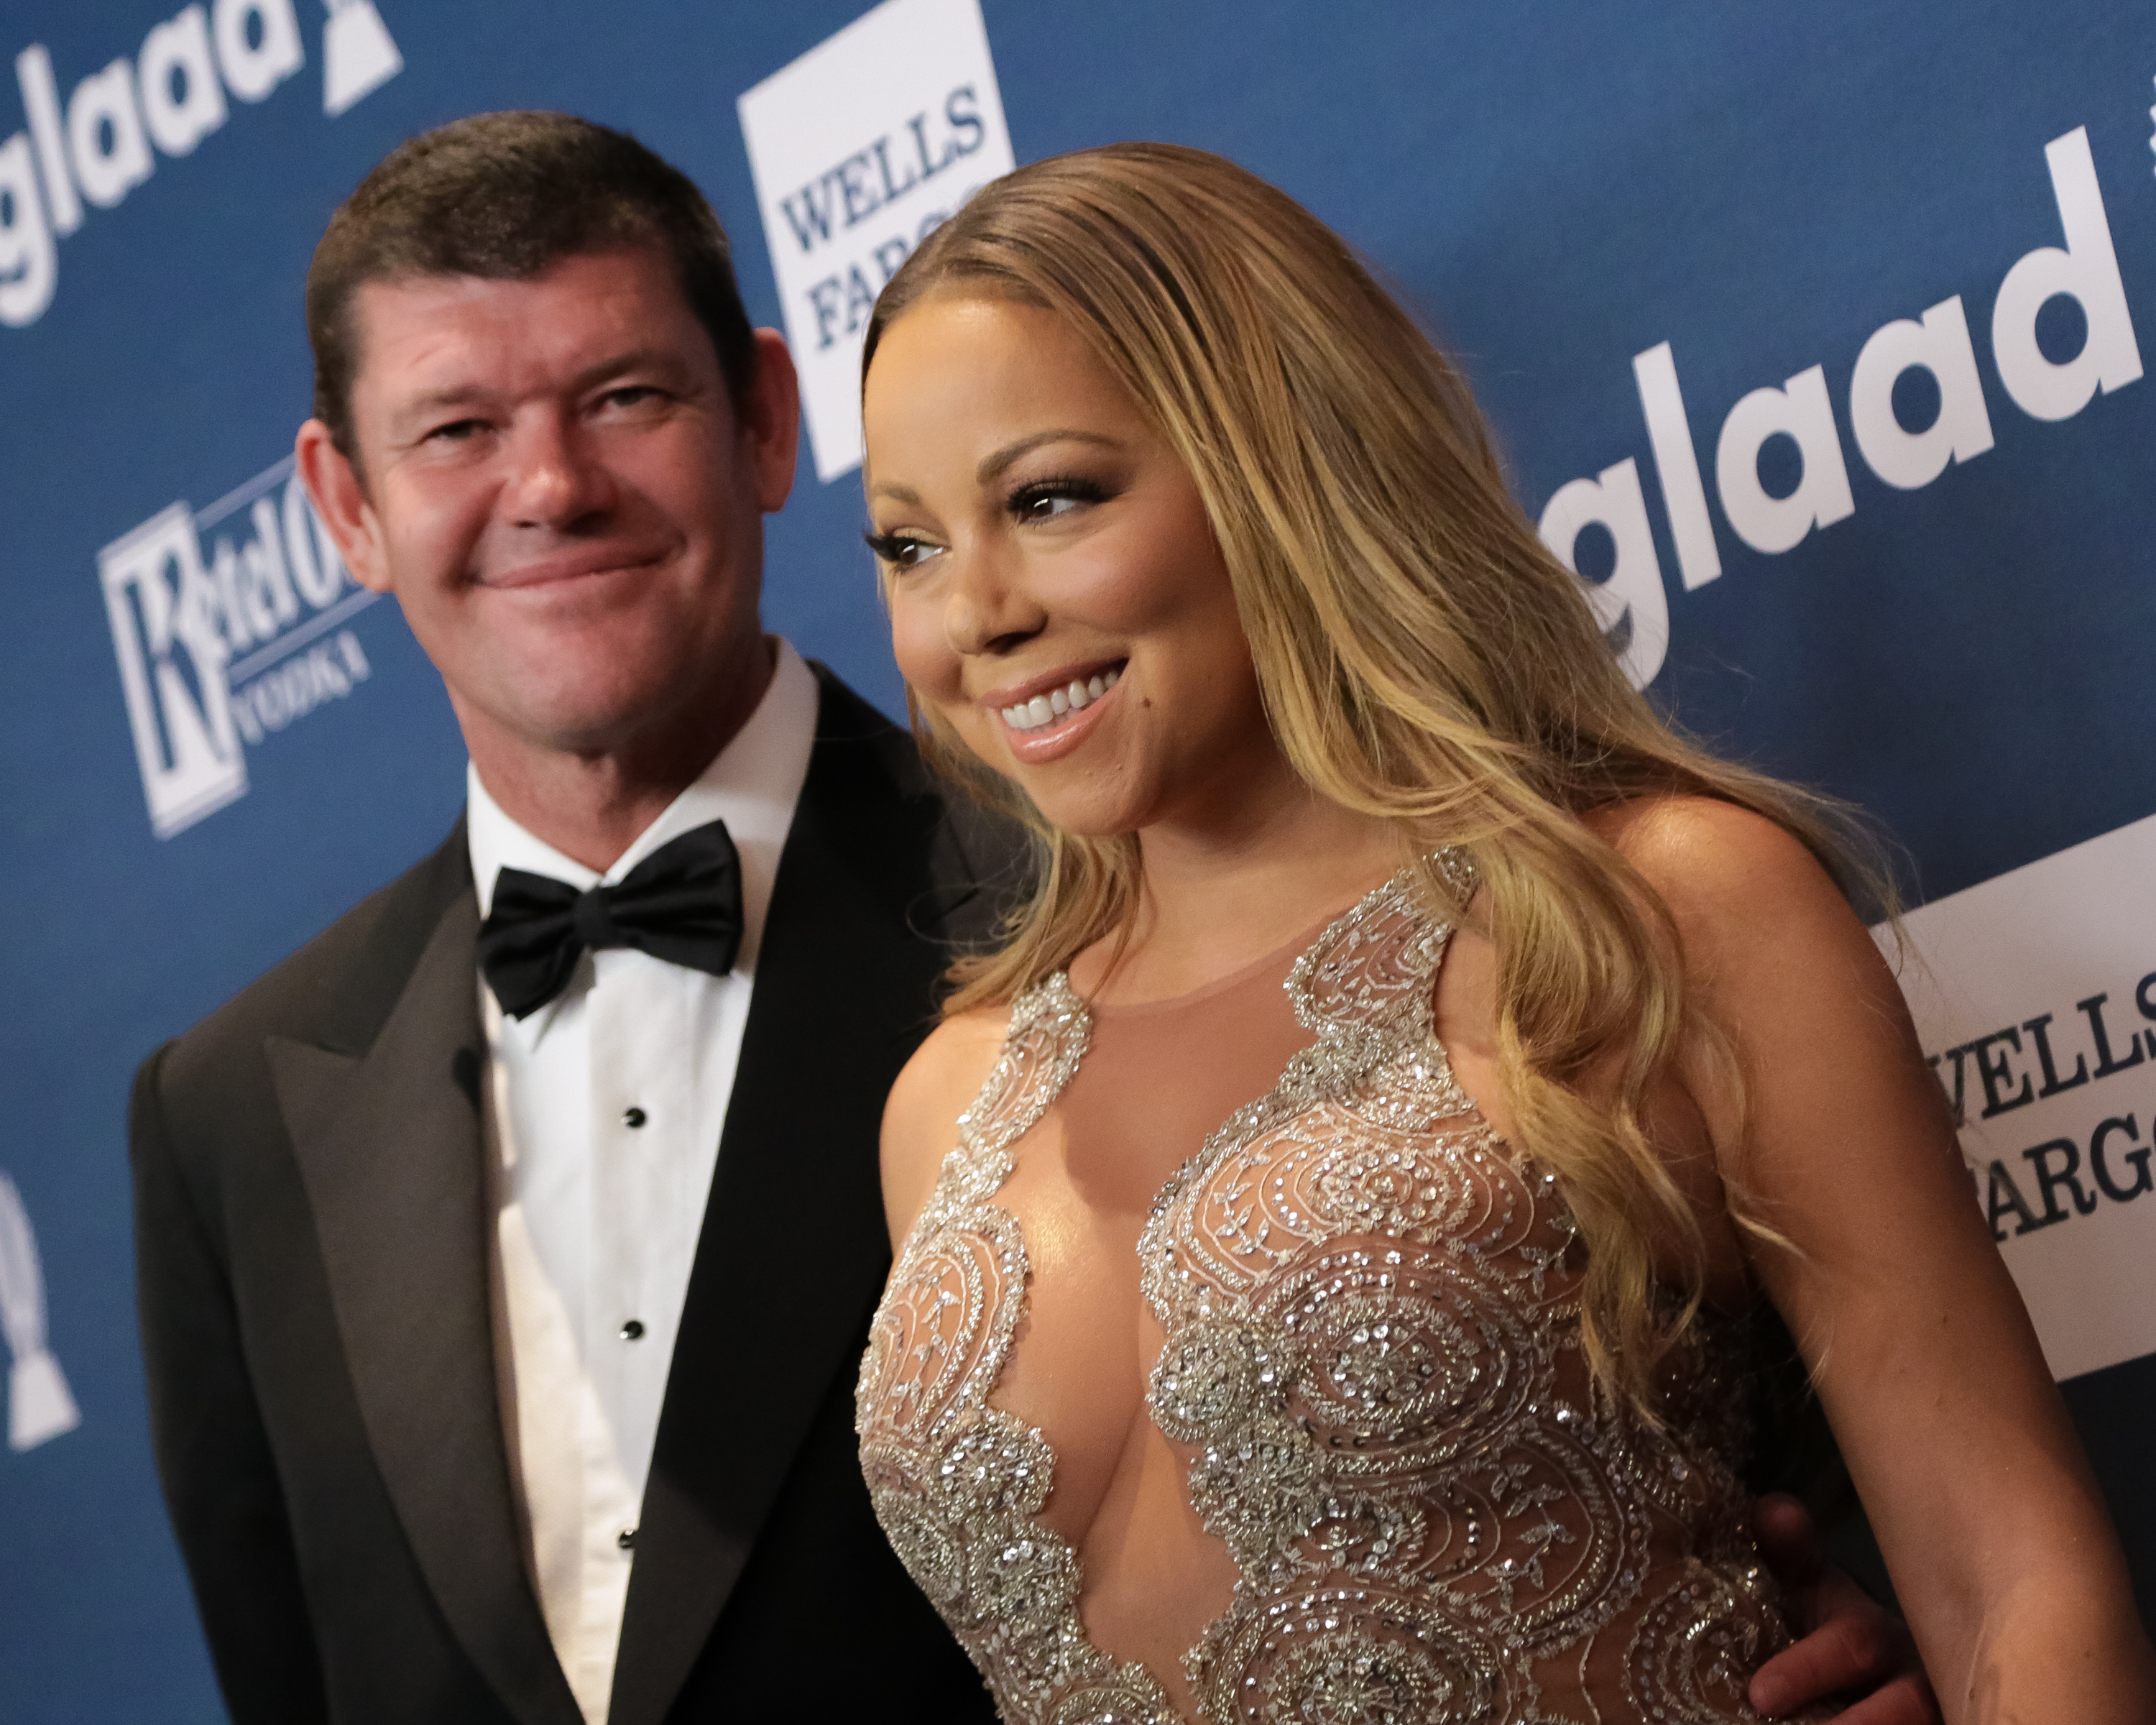 Mariah Carey's billionaire ex James Packer claims engagement to the singer was a 'mistake'